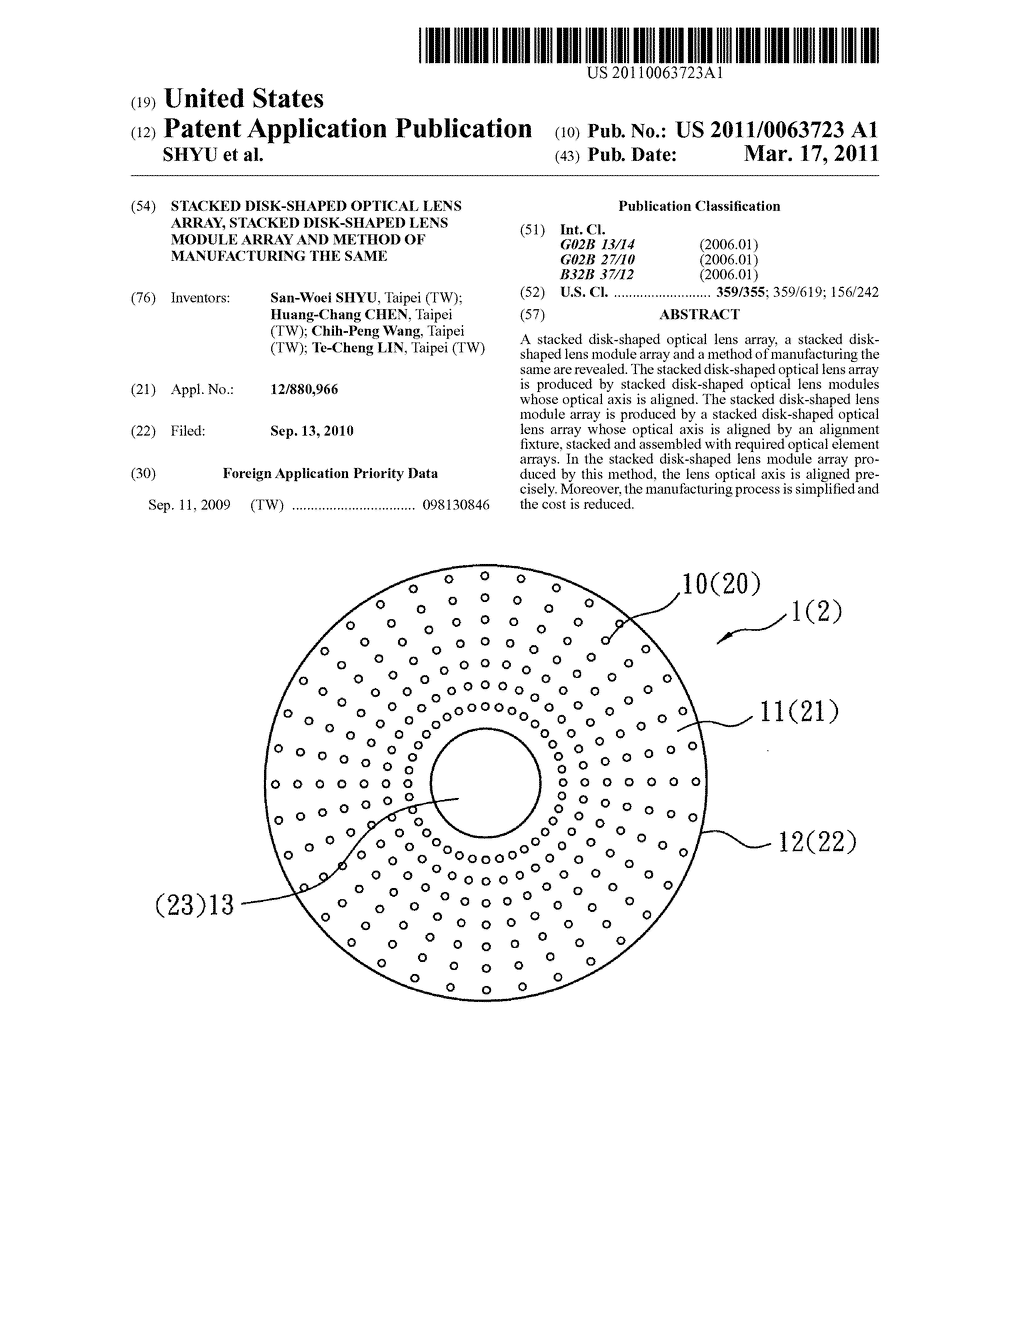 STACKED DISK-SHAPED OPTICAL LENS ARRAY, STACKED DISK-SHAPED LENS MODULE ARRAY AND METHOD OF MANUFACTURING THE SAME - diagram, schematic, and image 01